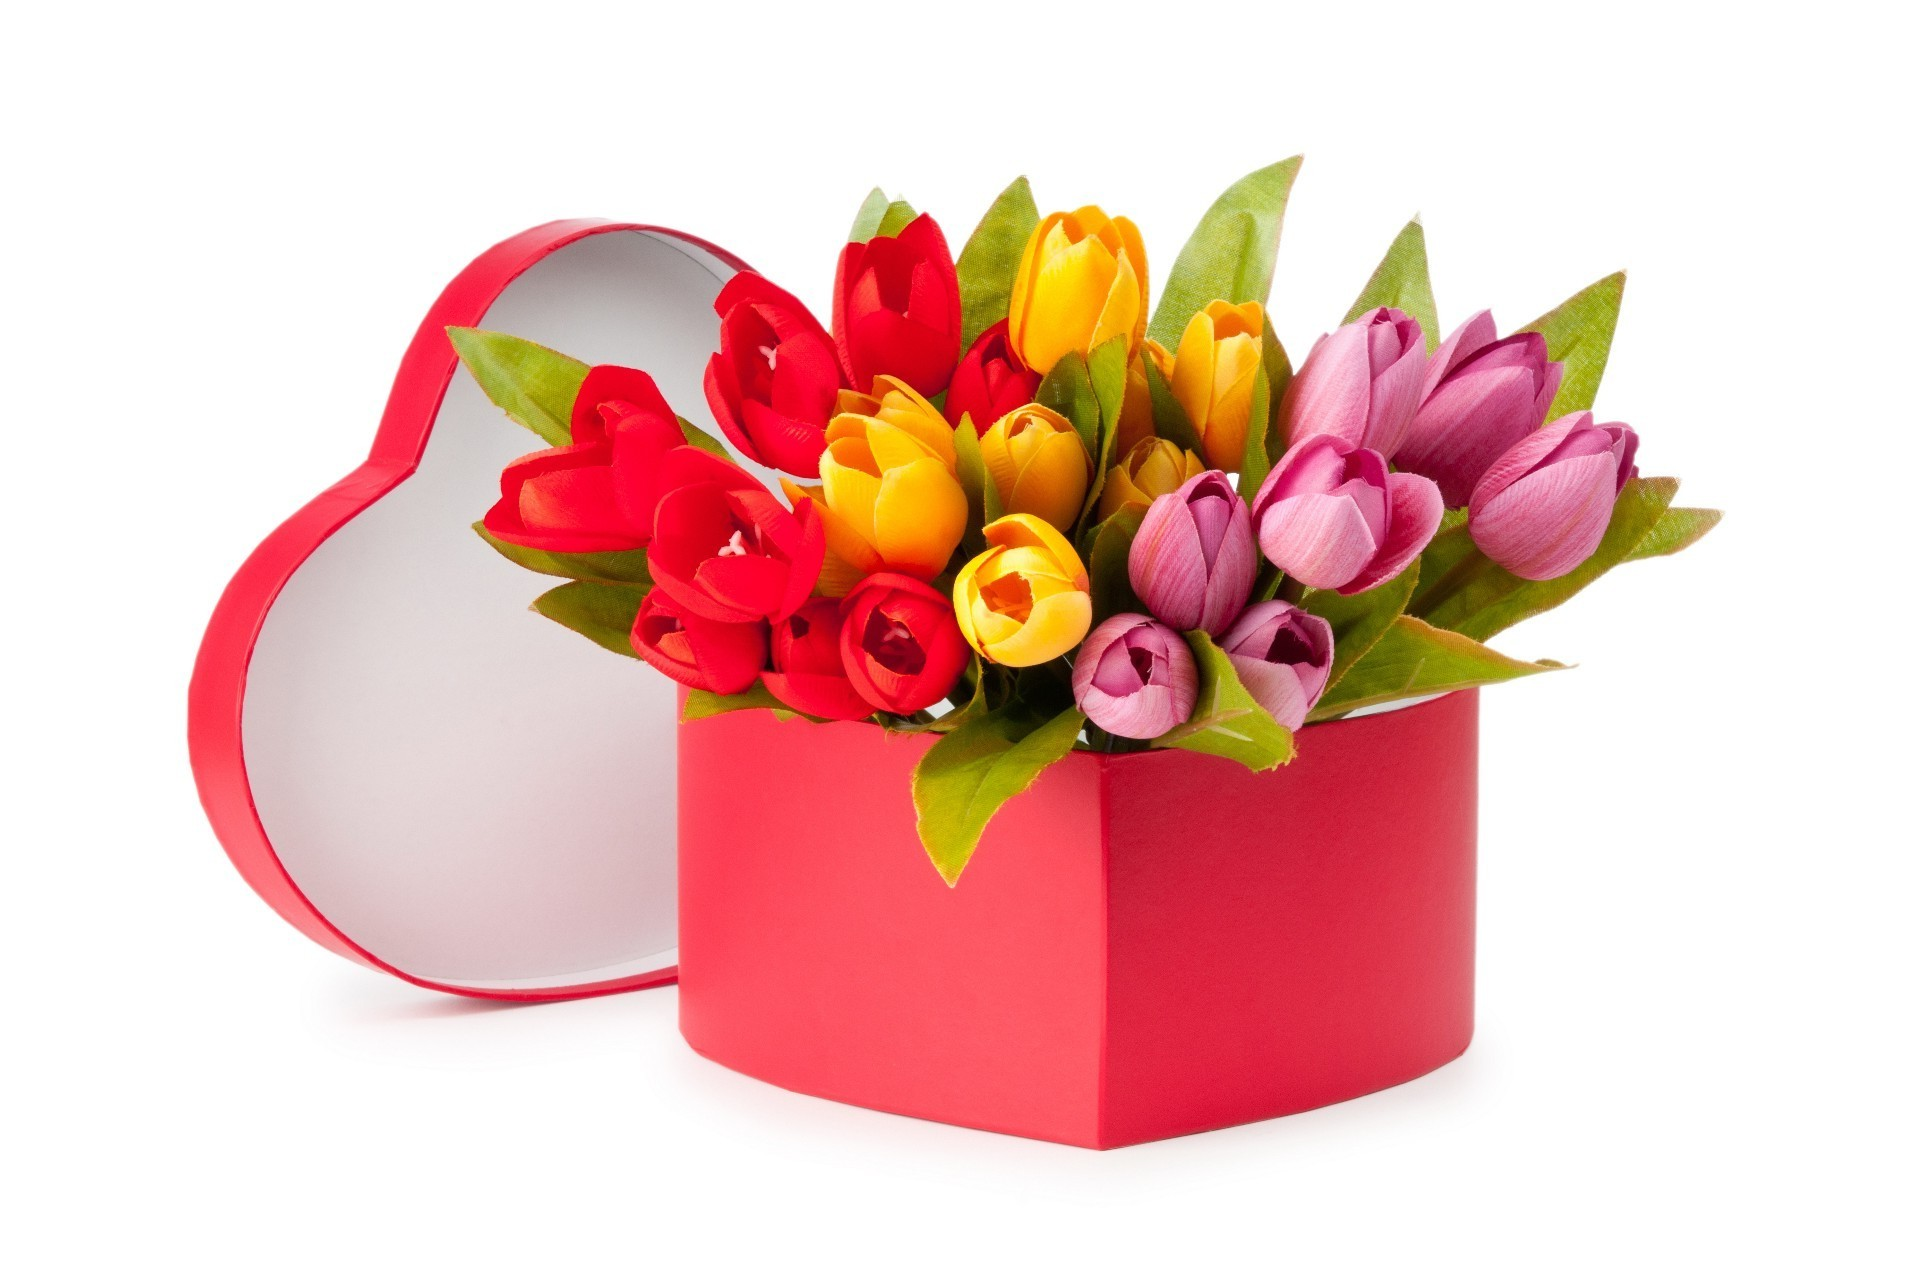 tulips gift flower birthday bouquet decoration leaf flora nature isolated easter color floral celebration desktop love bright season beautiful